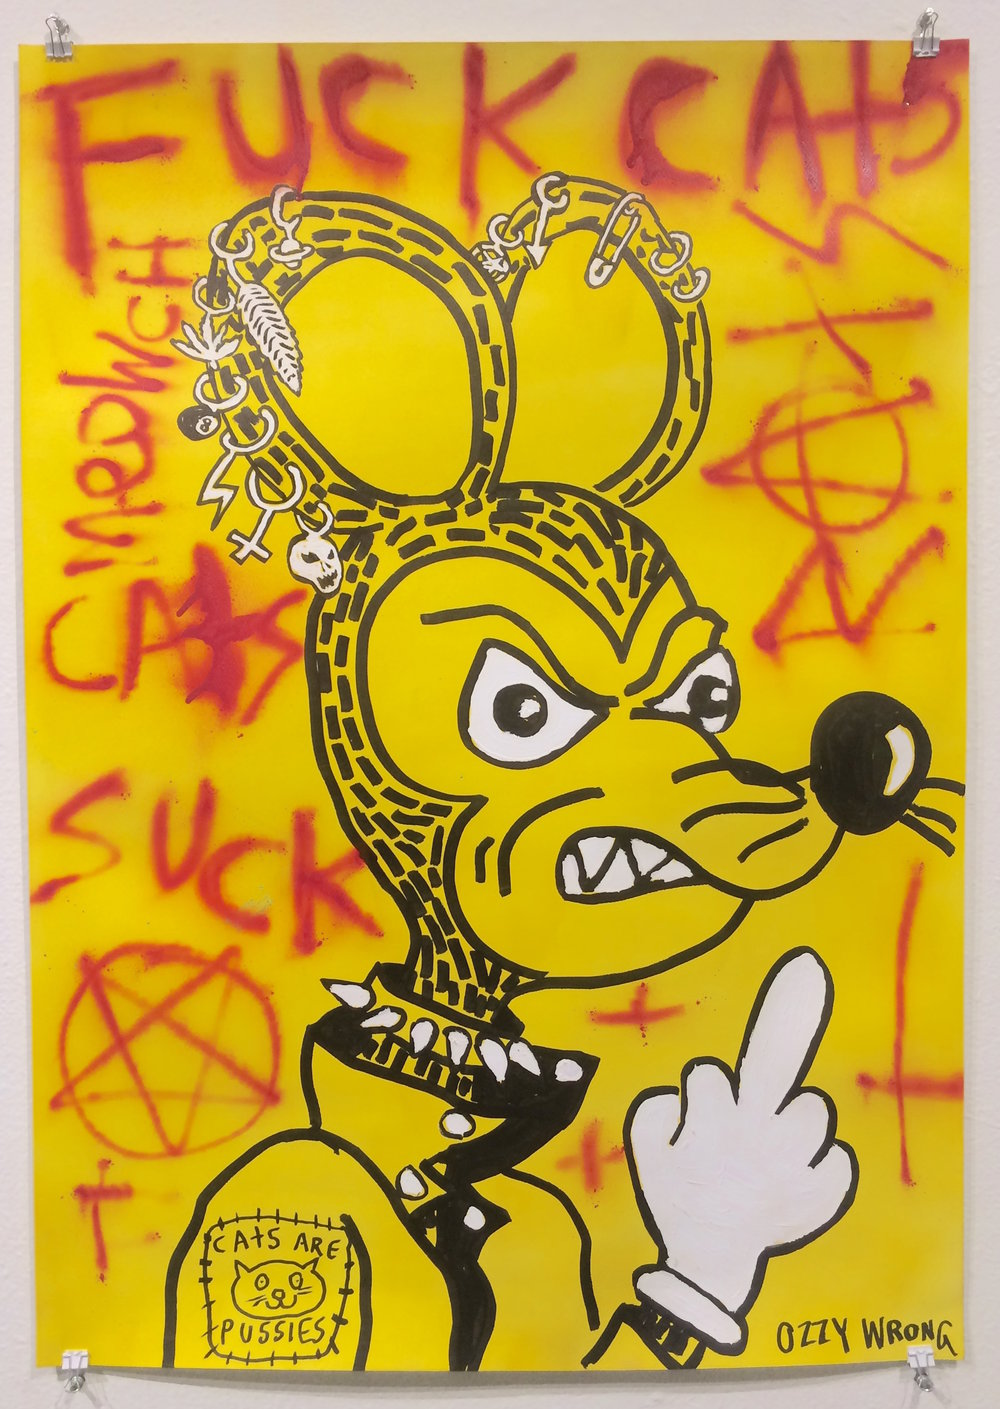 Ozzy Wrong / Cat's Suck / 2018 / Acrylic and spray paint on paper / 40 x 28 inches